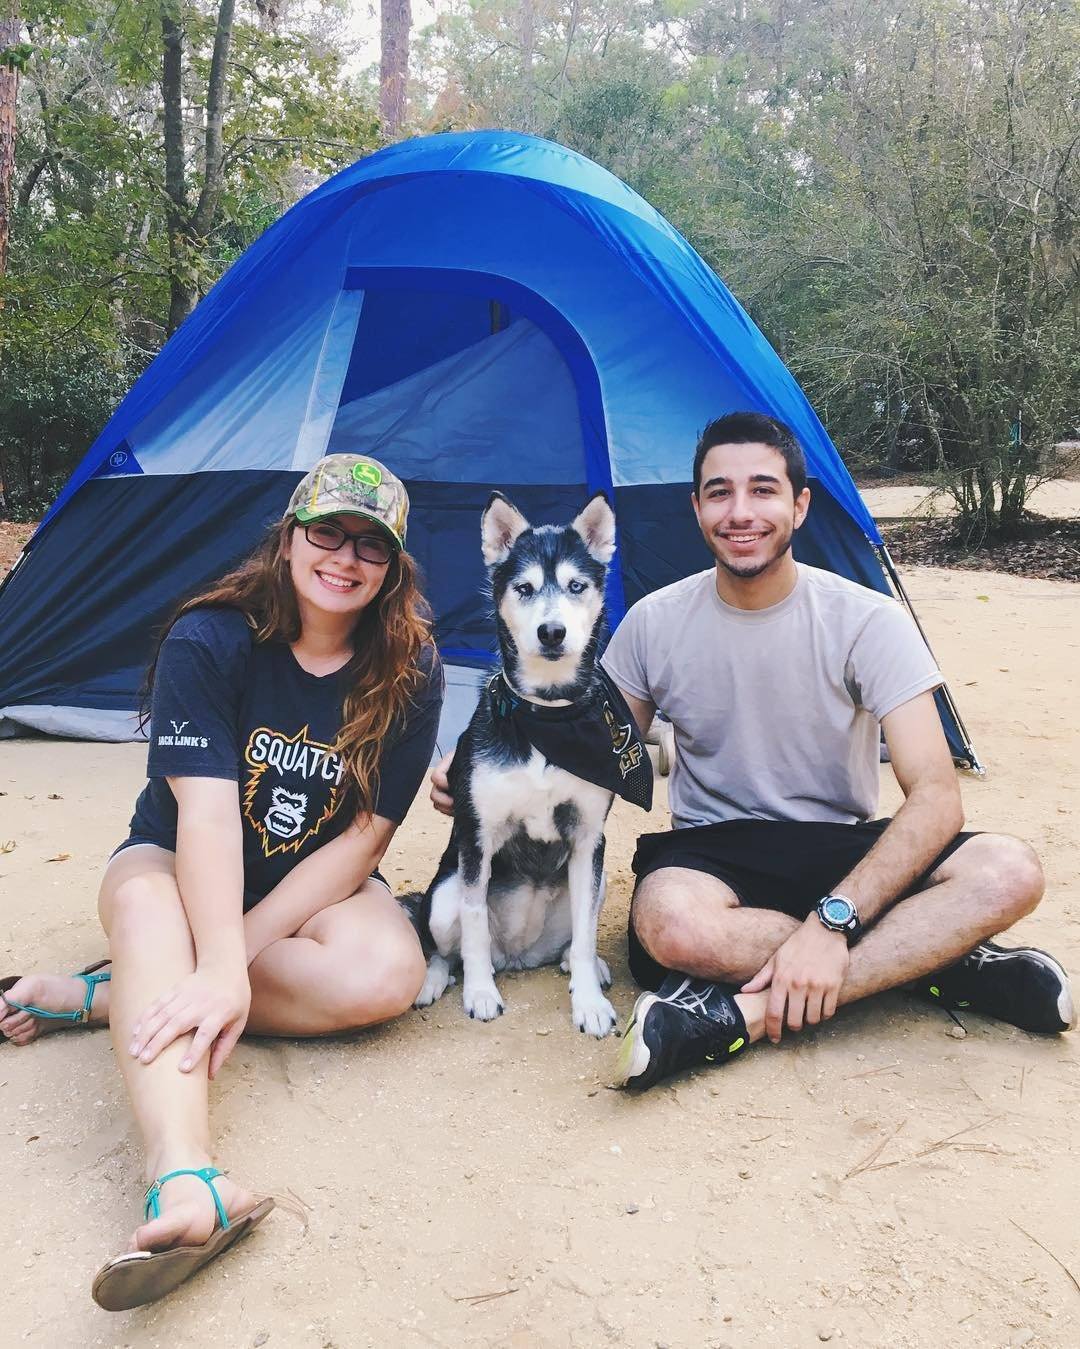 A man, woman, and dog pose outside their tent